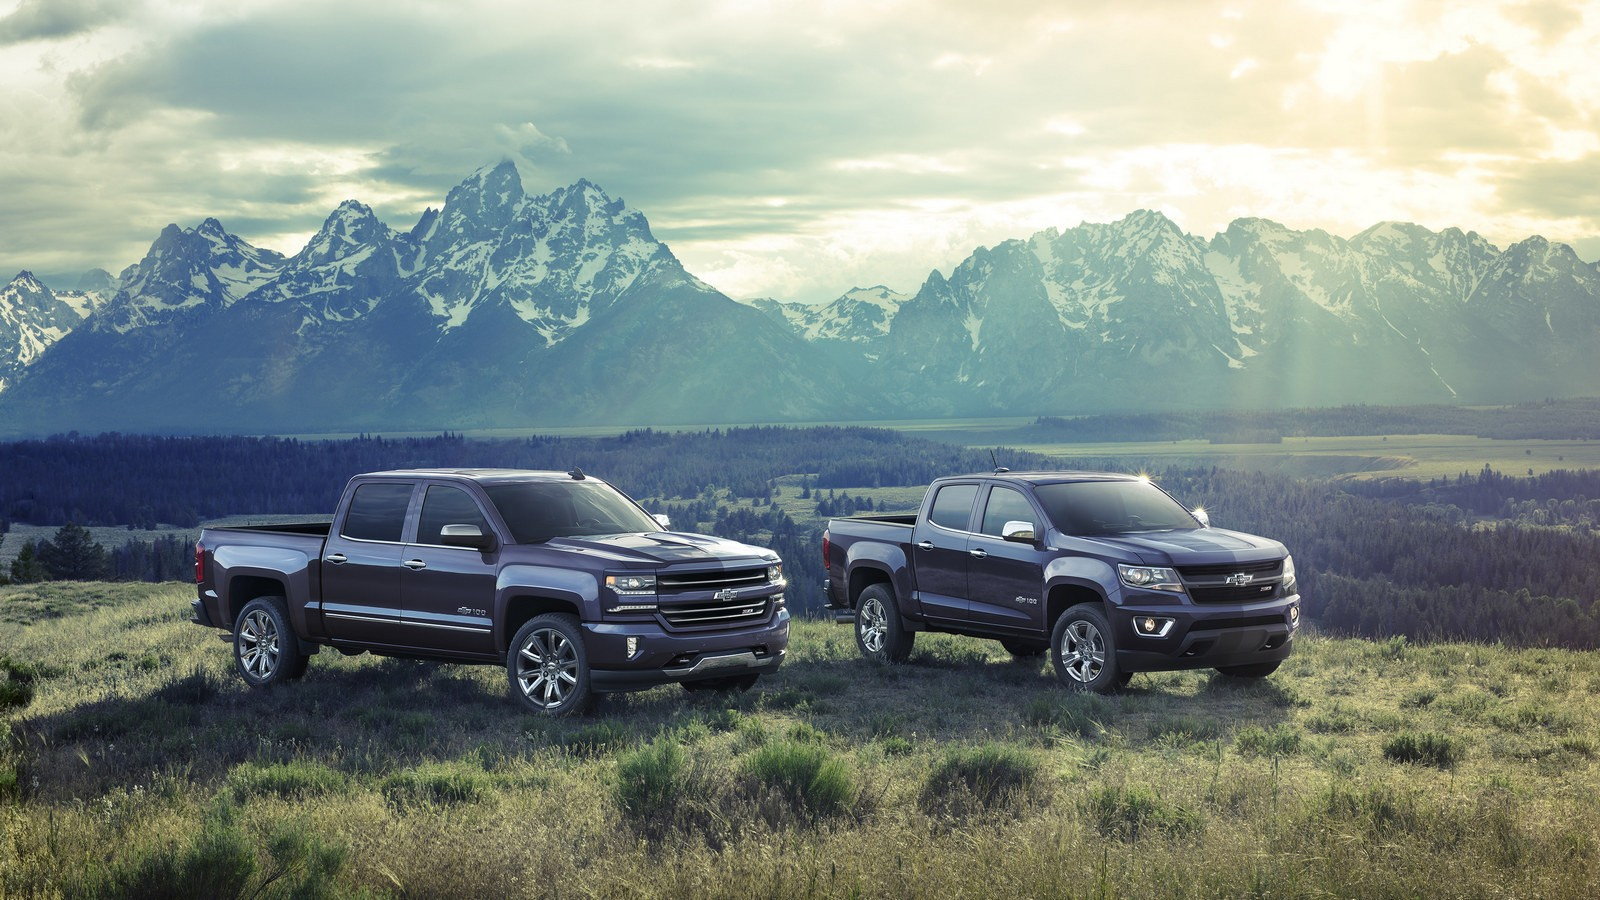 2018 Centennial Edition Silverado and Colorado — To commemorate